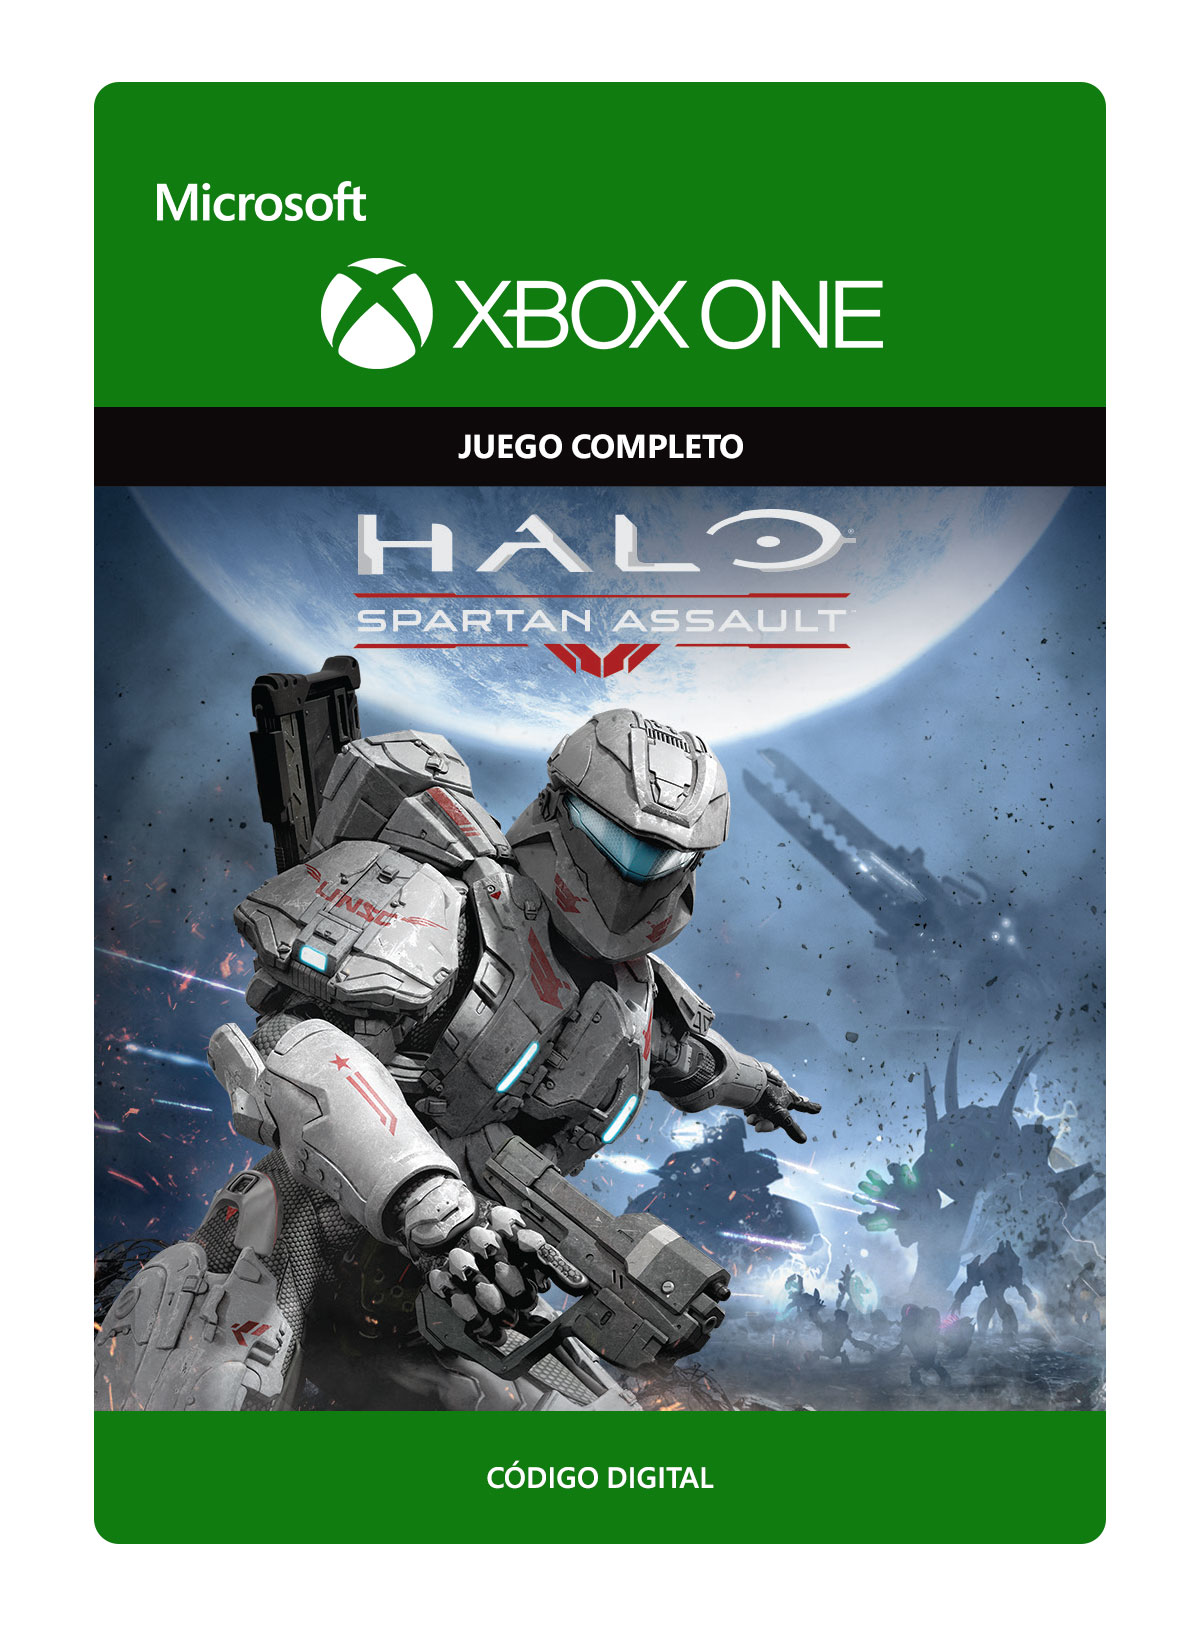 A logo is a symbol, mark, or other visual element that a company uses in place of or in conjunction with its business title. Xbox One - Halo: Spartan Assault - Juego Completo Descargable